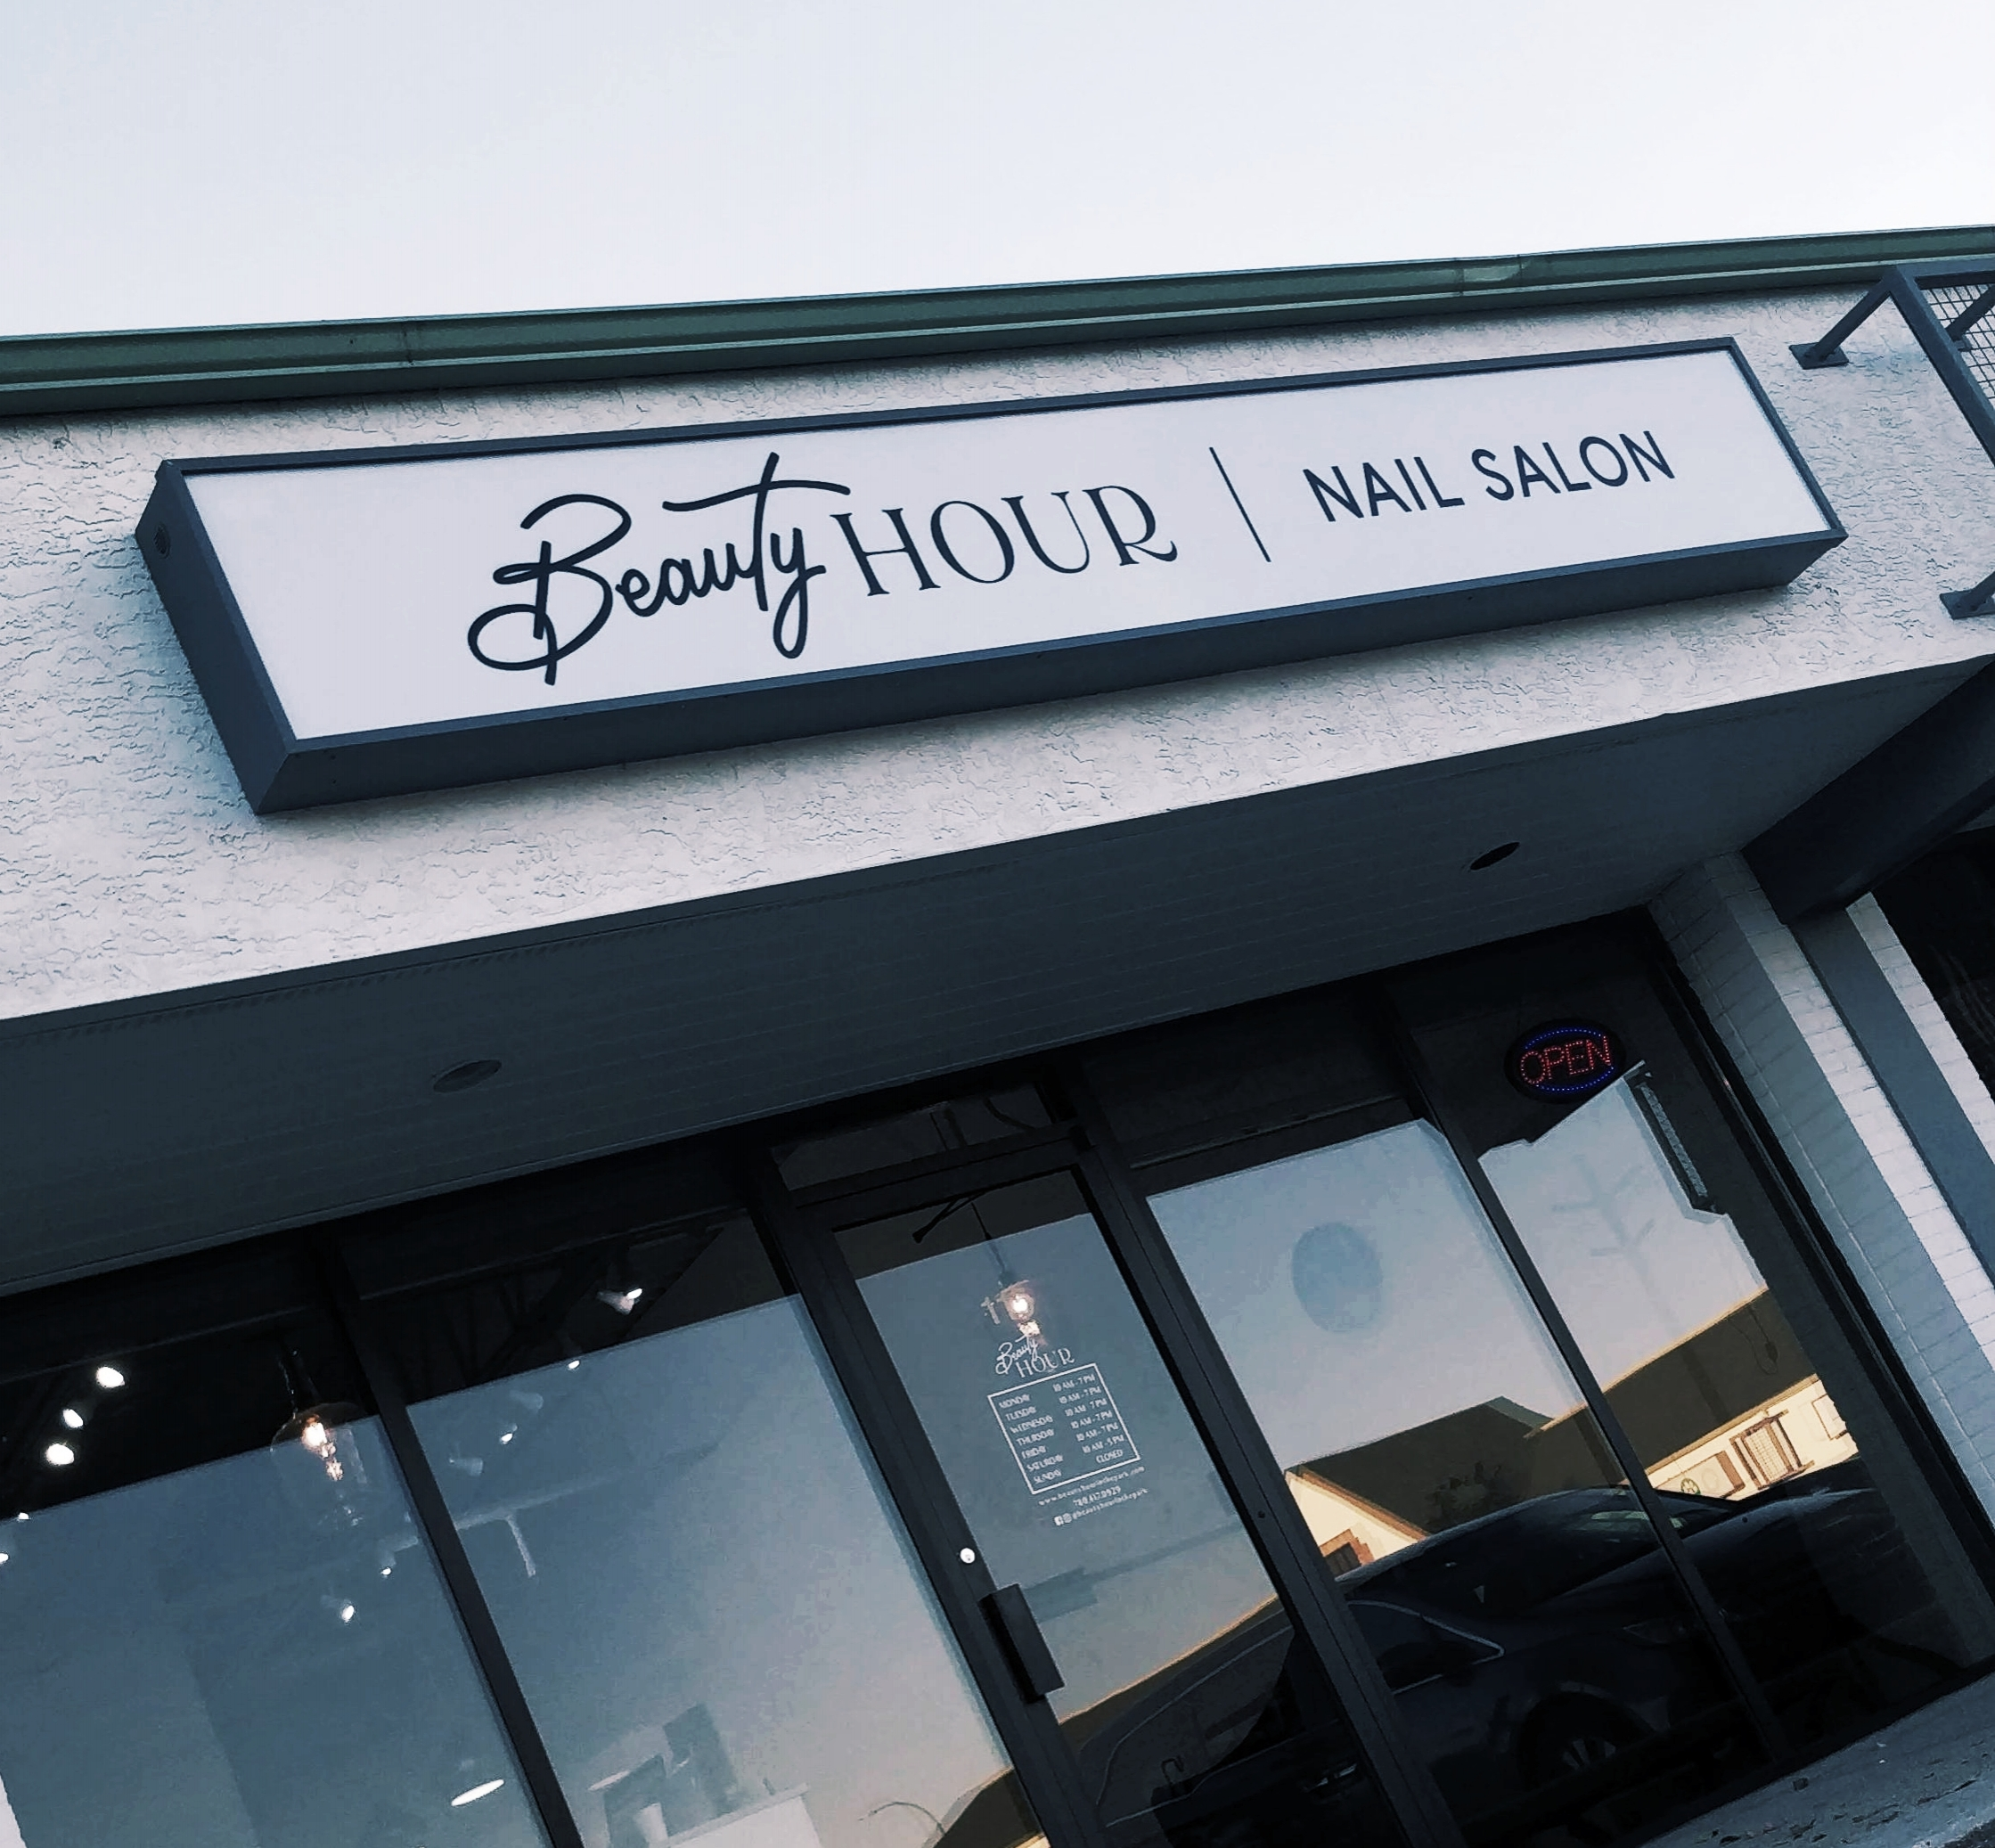 Beauty Nails in Sherwood Park Rebrands Their Name to Beauty Hour - October 22, 2018